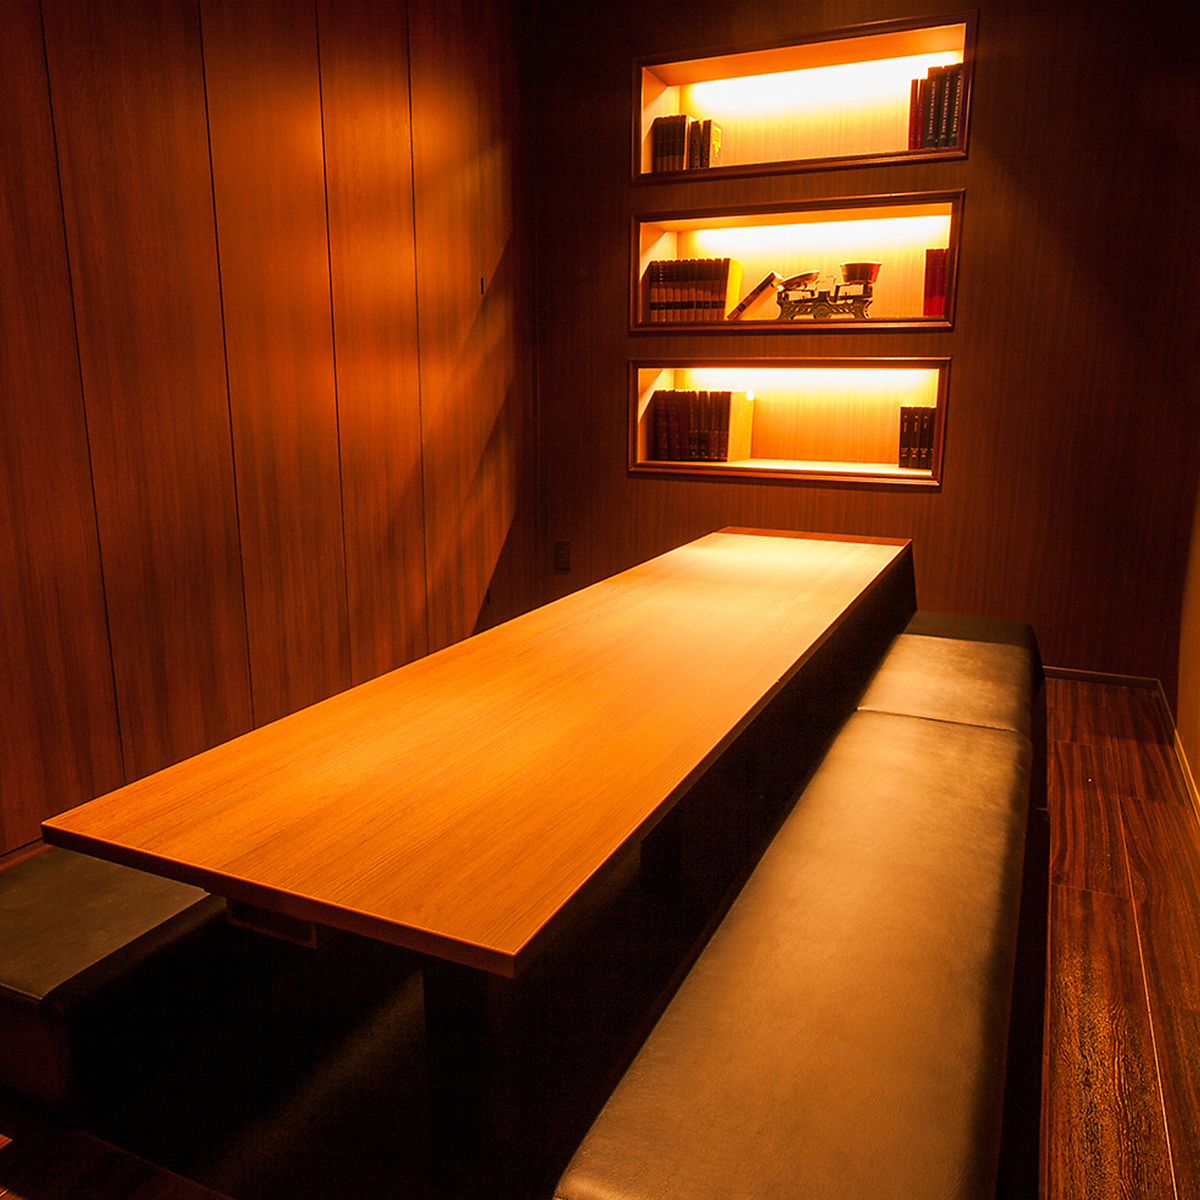 Suitable for use with corporate banquets, digging tatami room that can be used extensively / 6 ~ 10 people